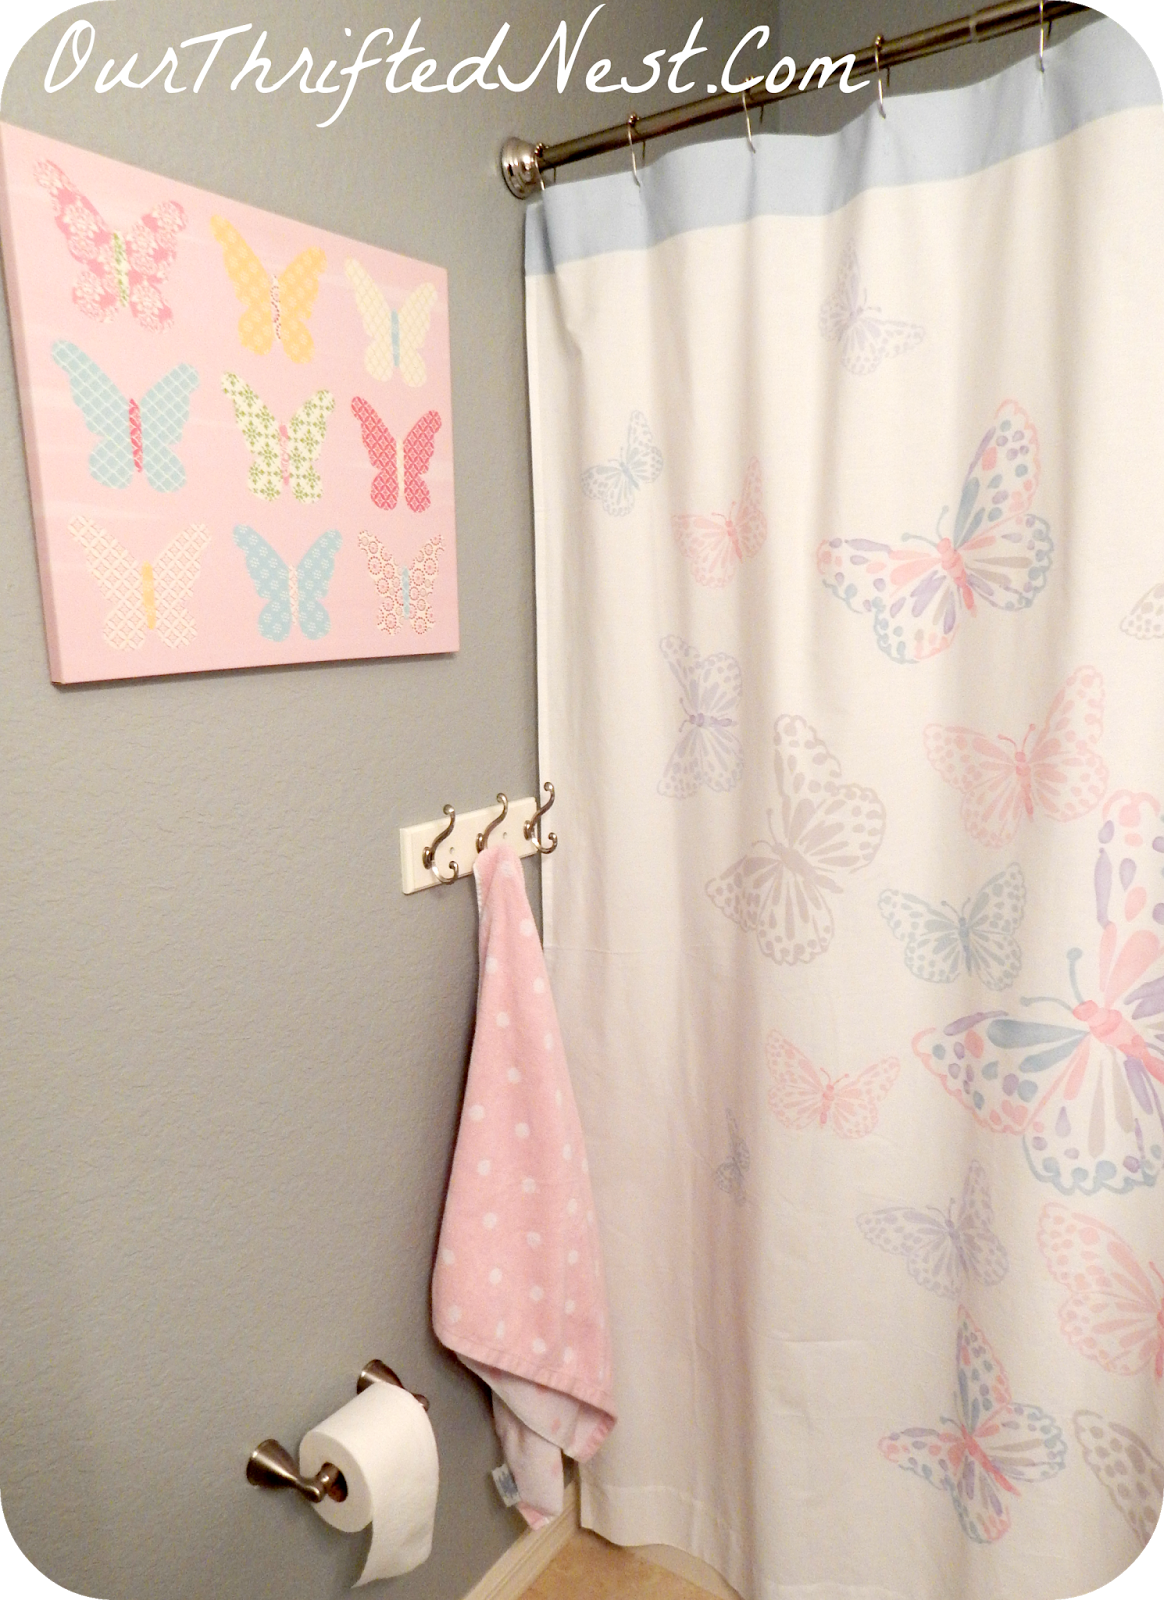 Bathroom Decor: Small Little\'s Girl\'s Butterfly Pink, Gray, Blue ...